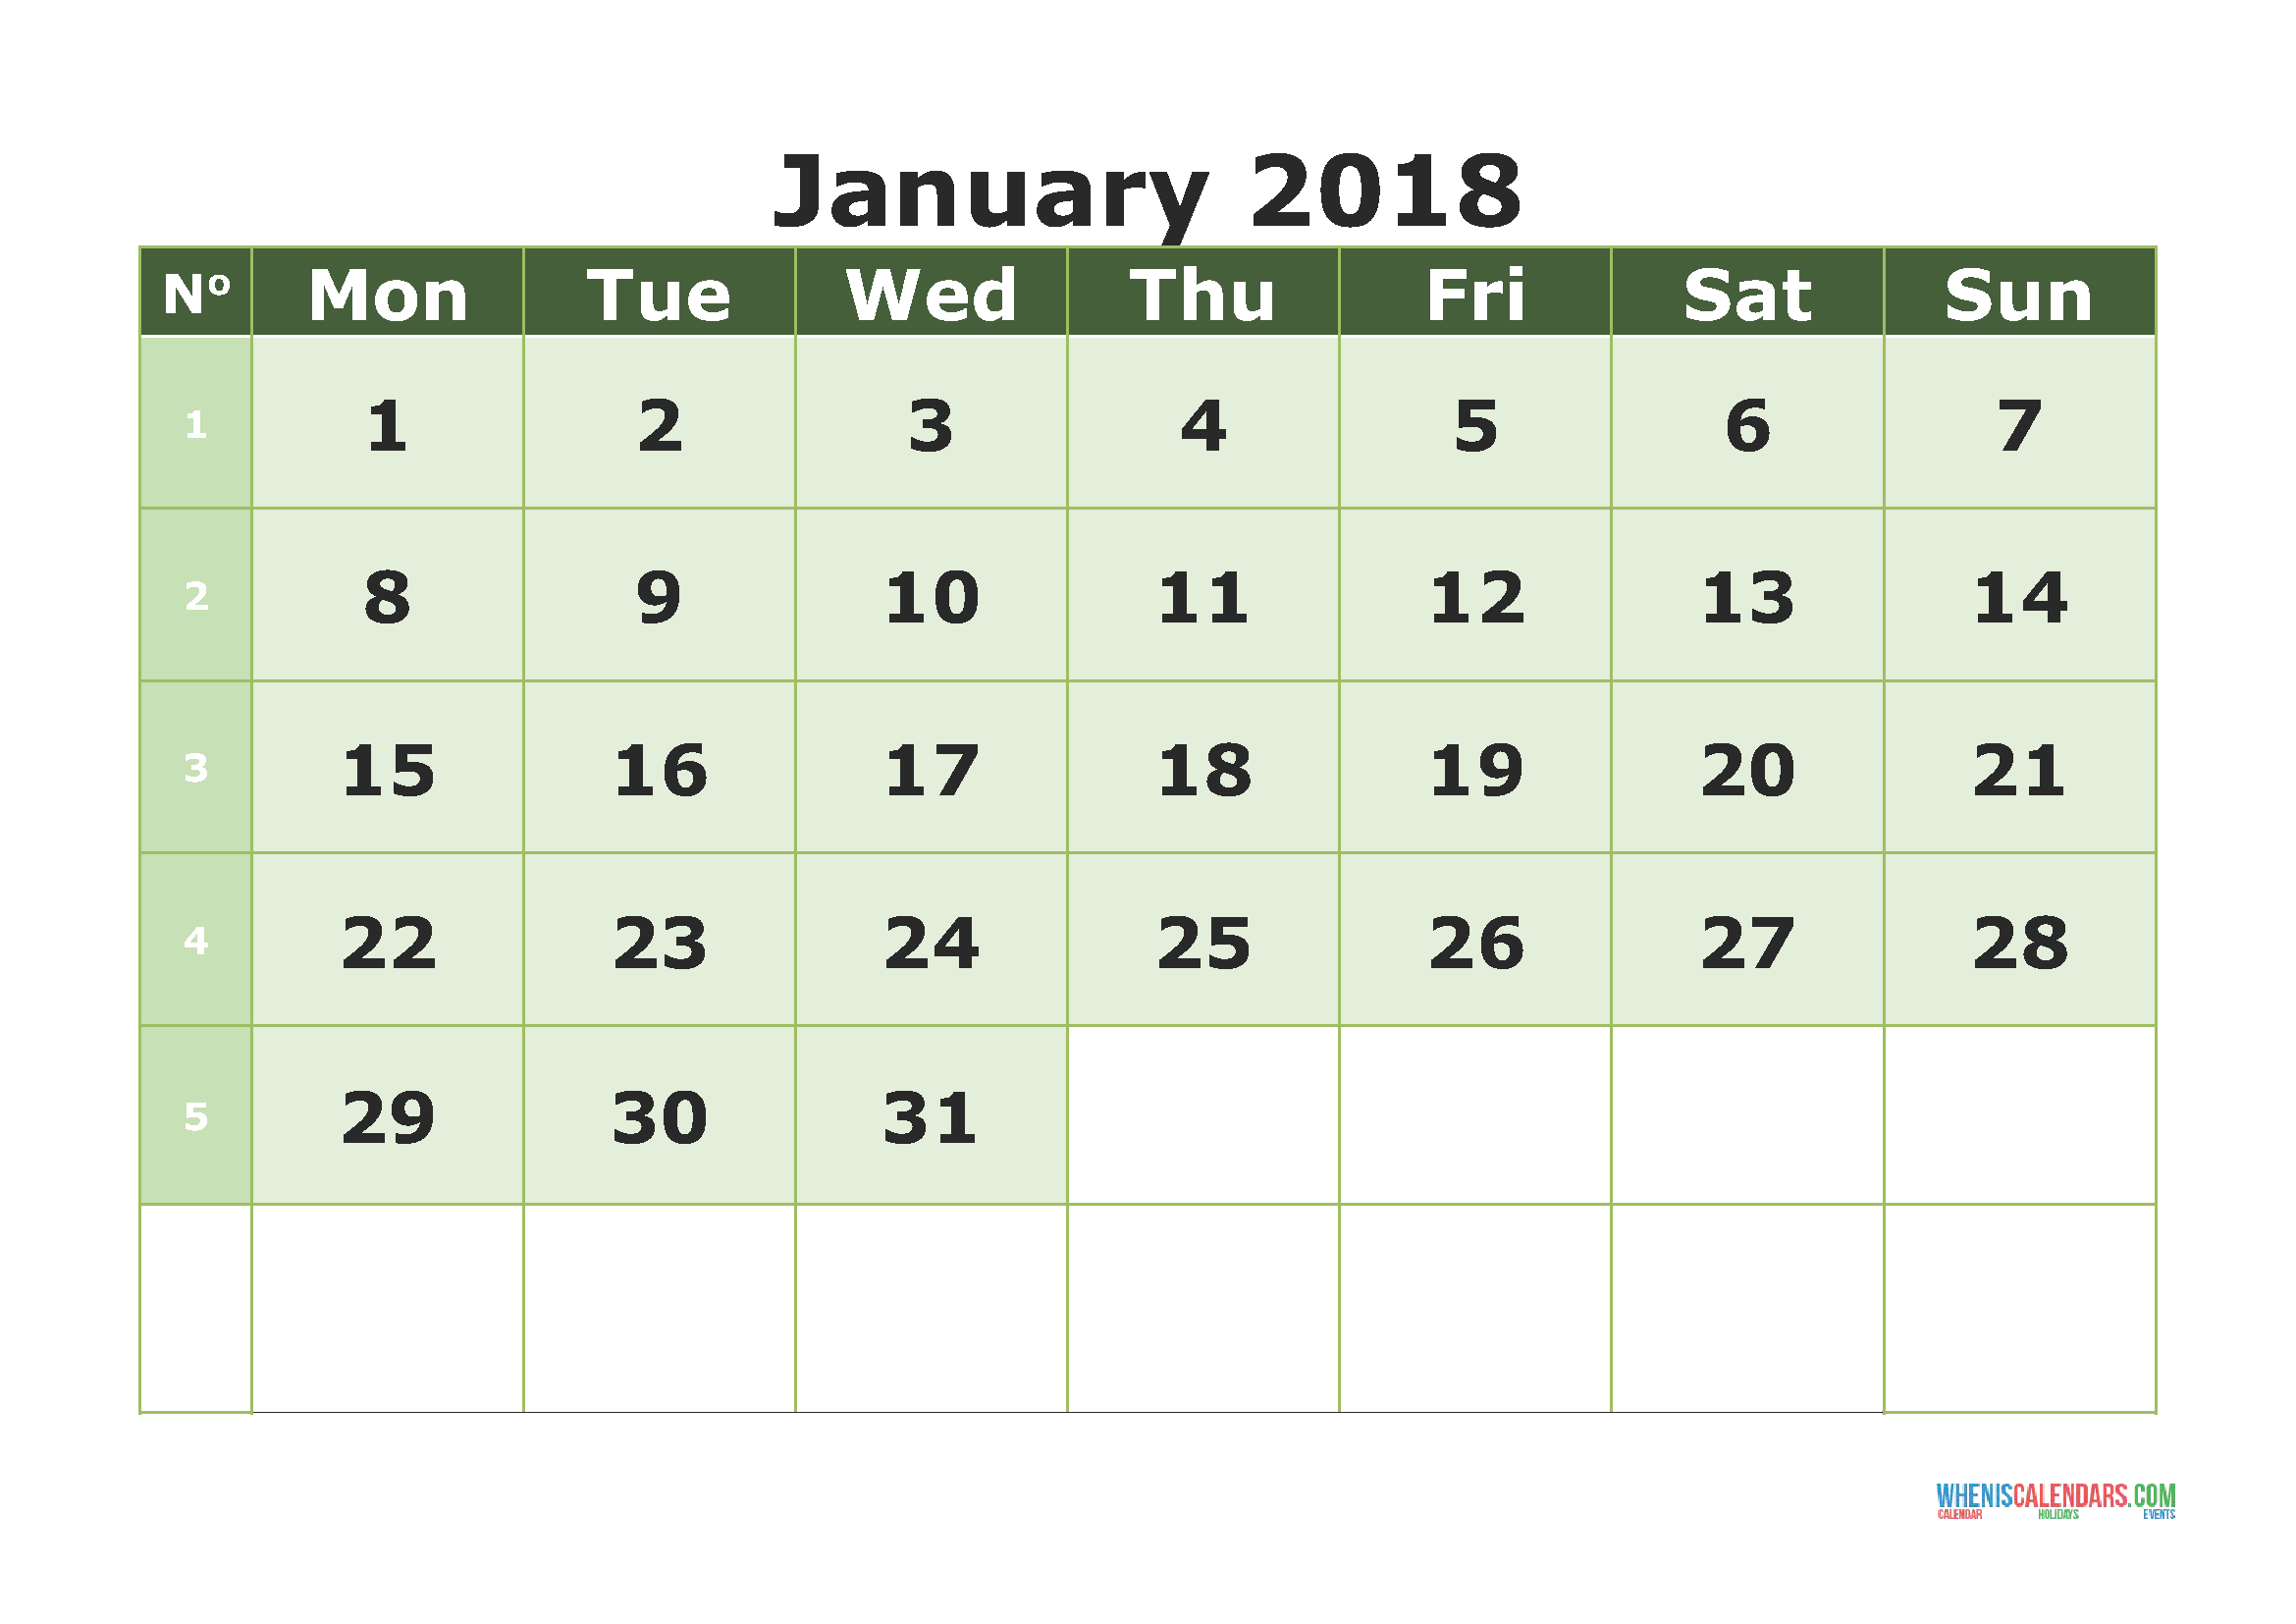 click the link to download or print the printable calendar january 2018